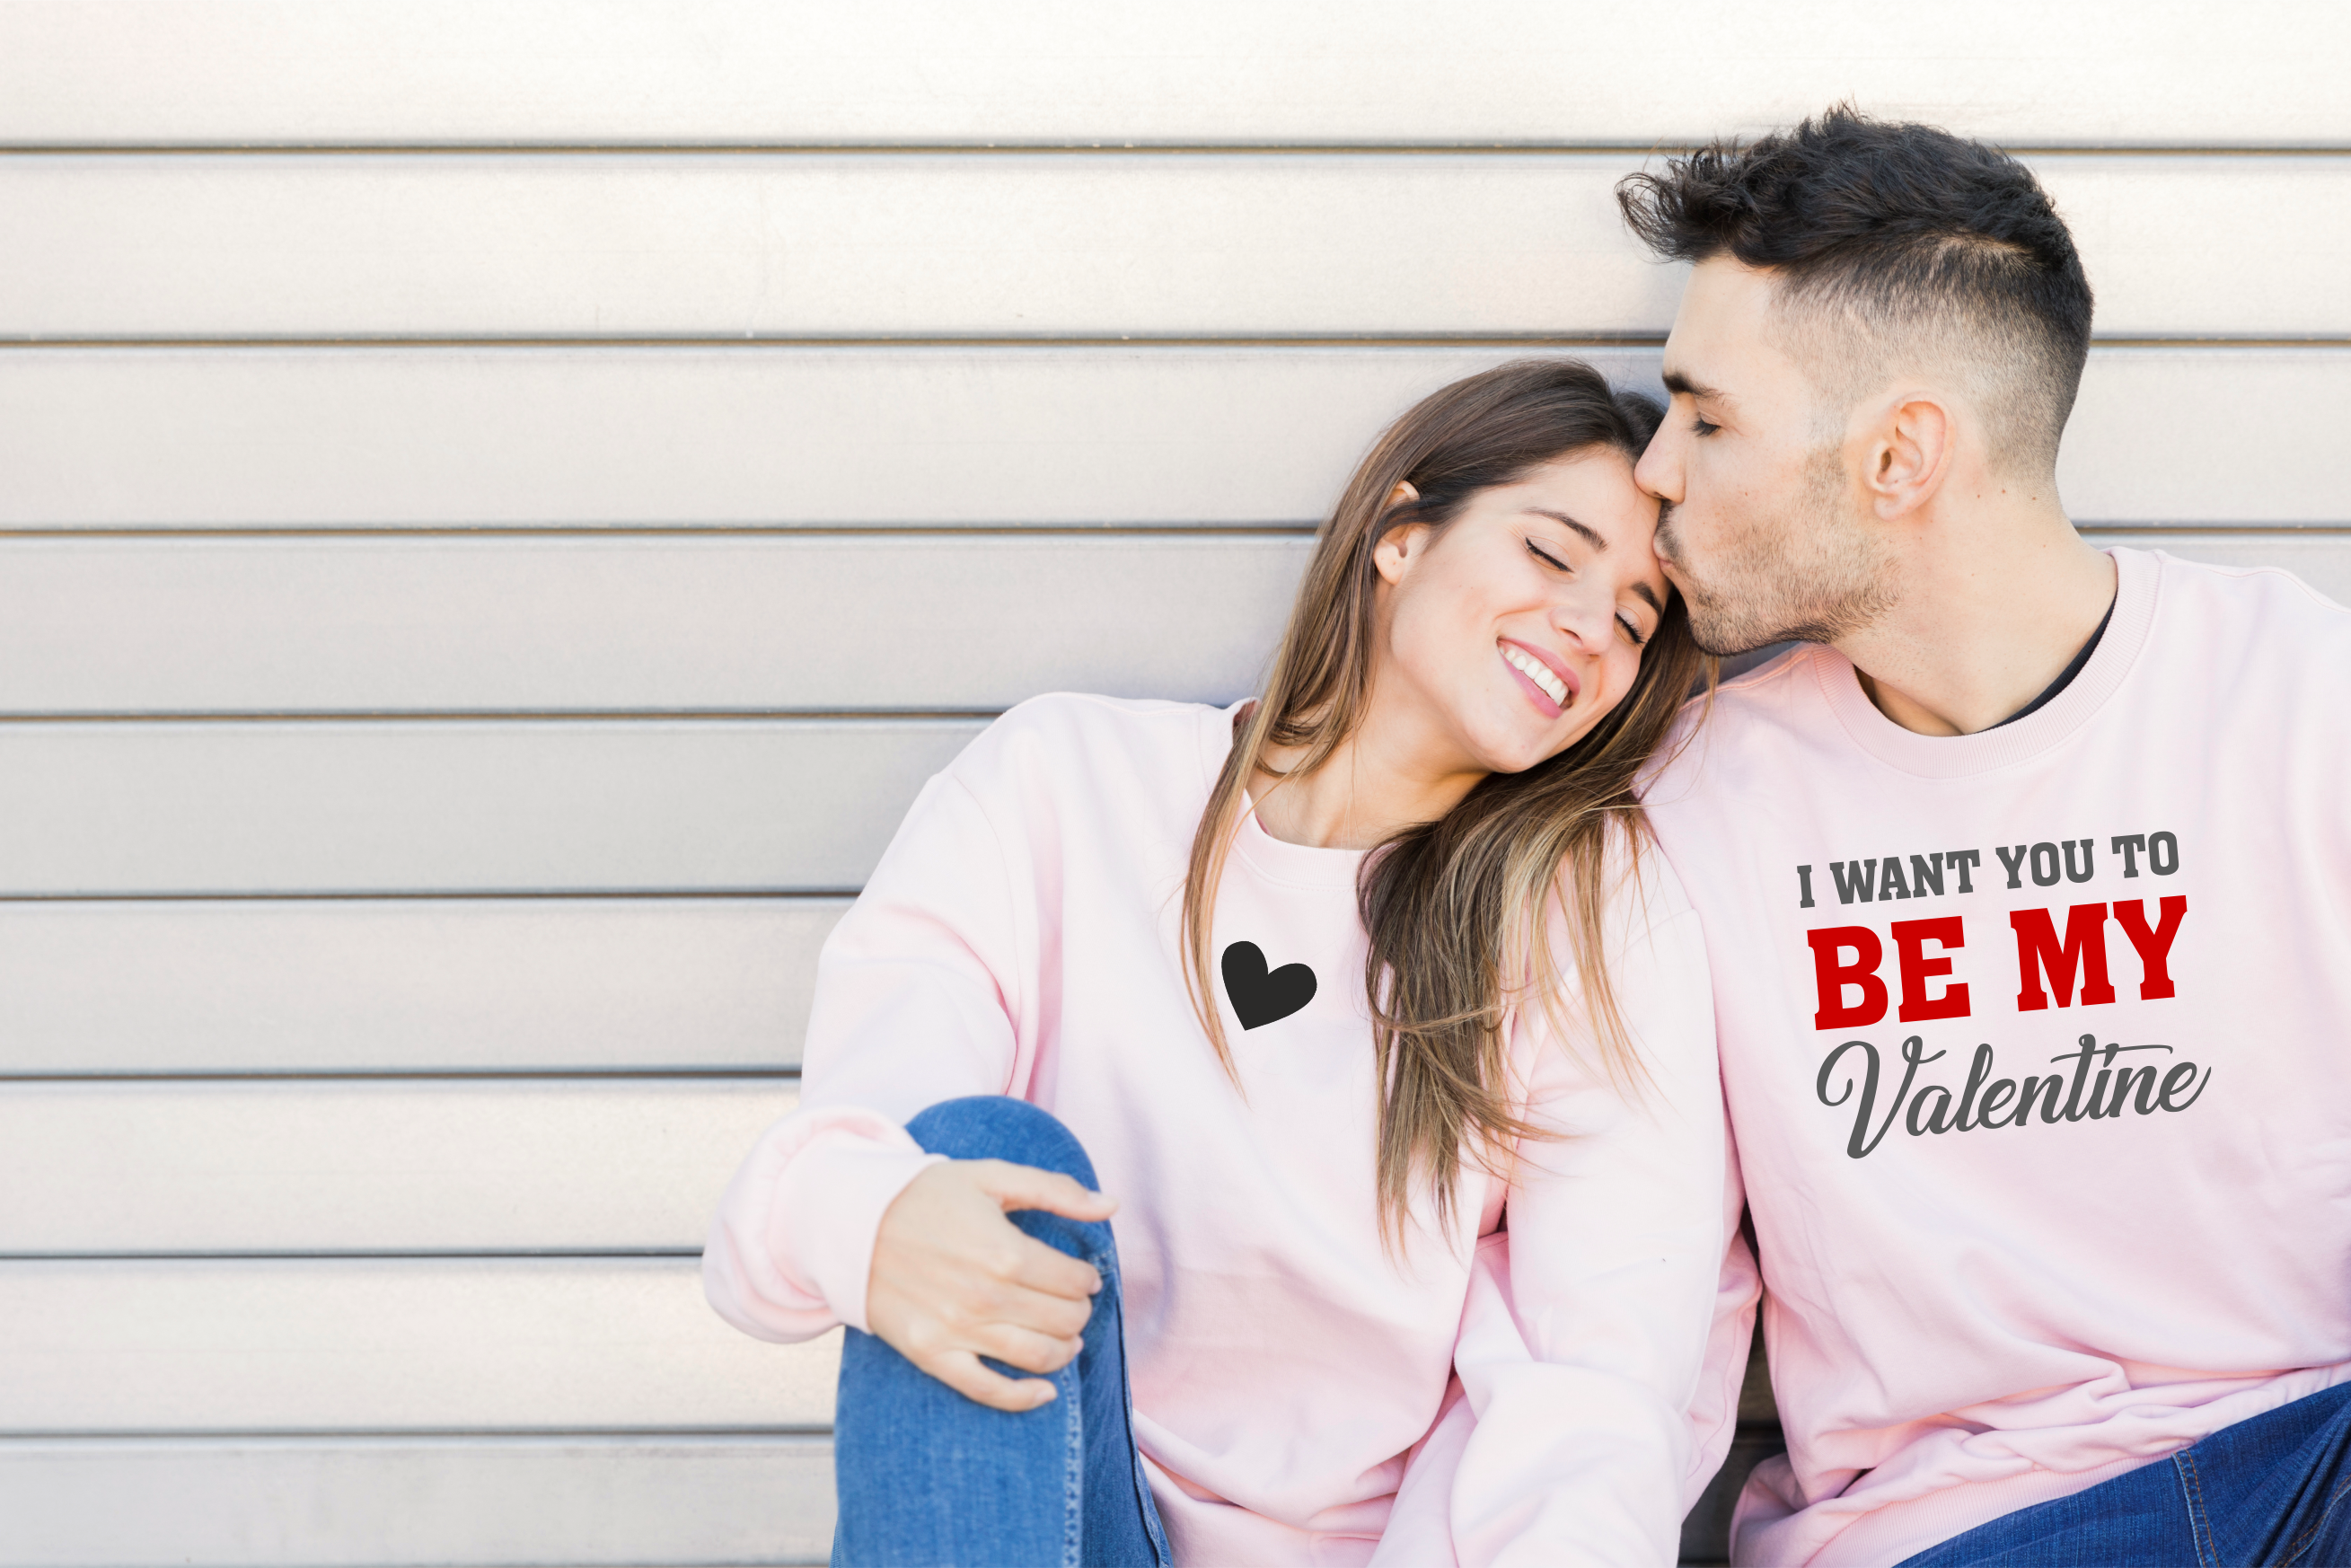 Malaysia dating online - Want to meet eligible single woman who share your zest for life?